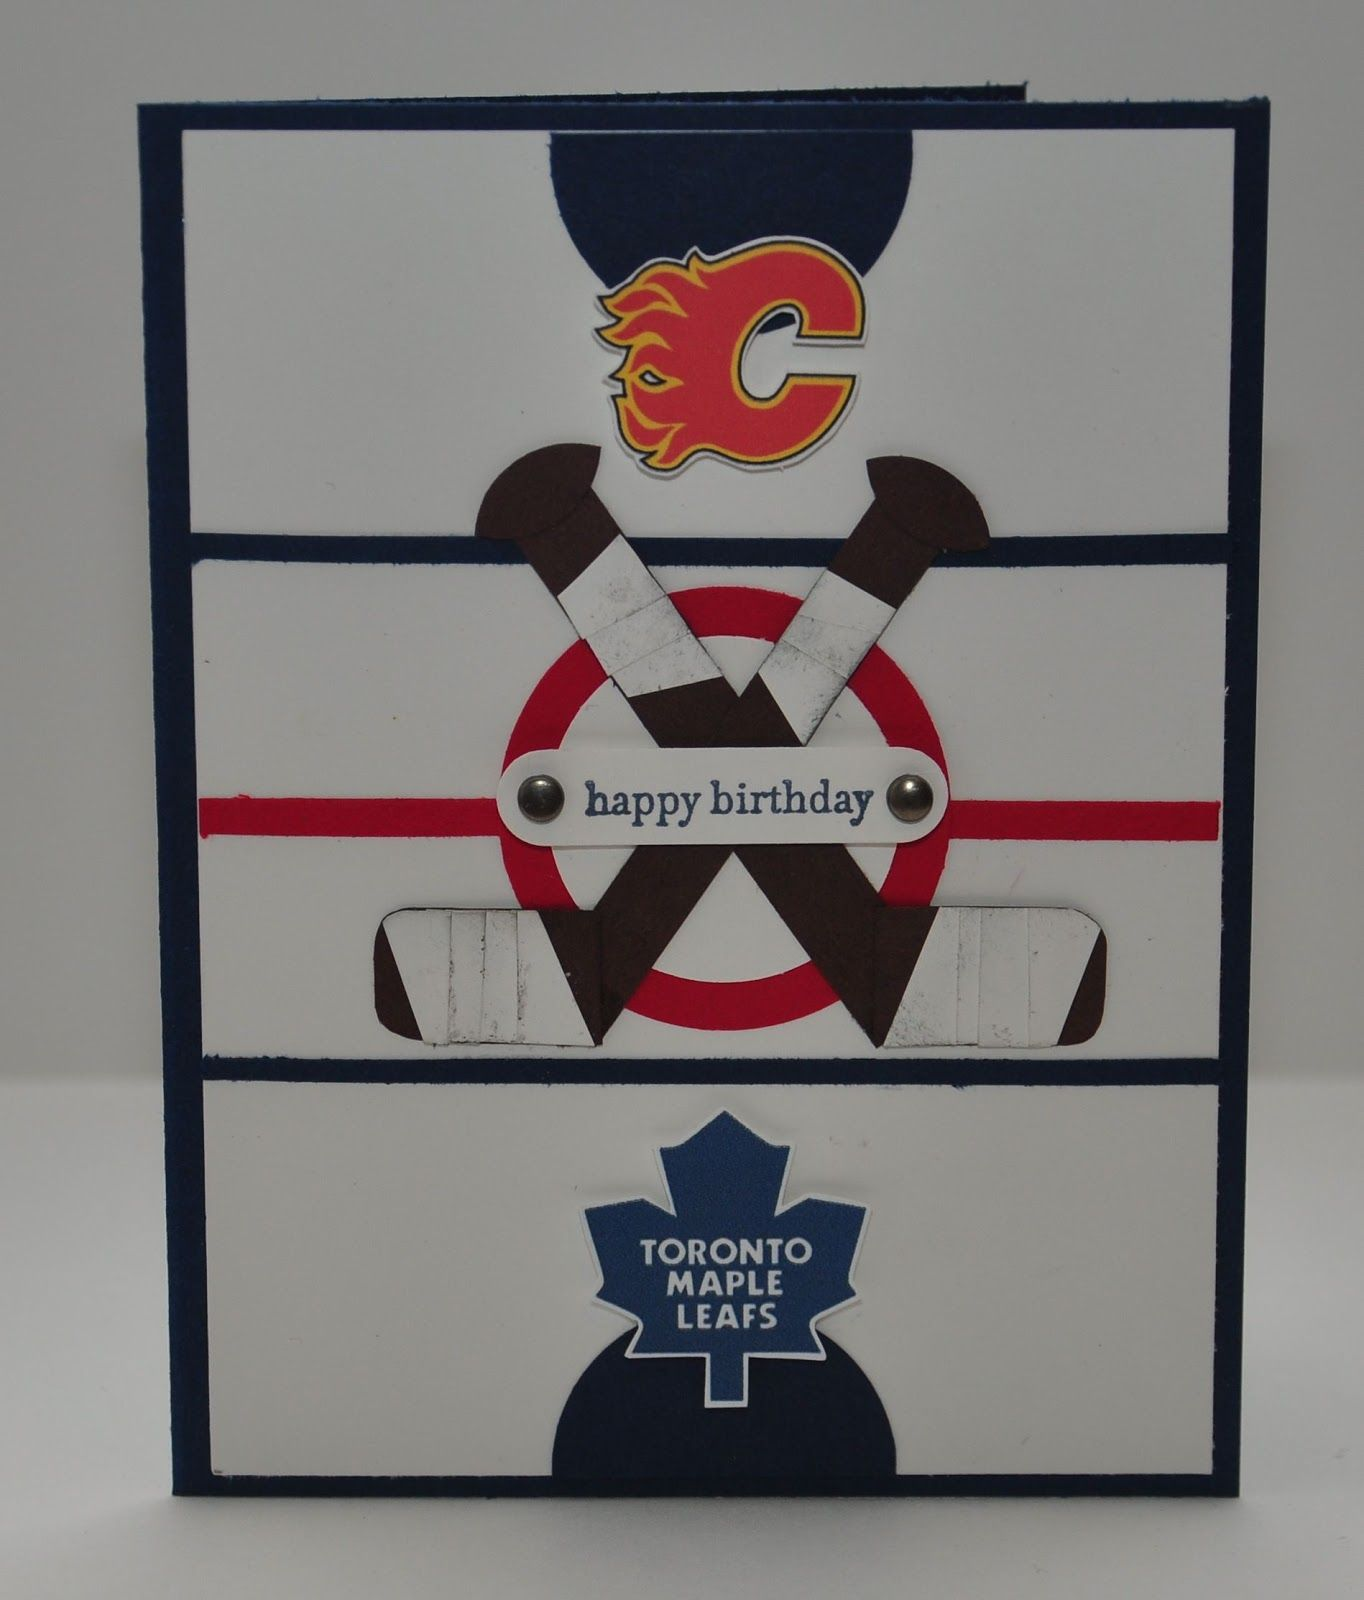 Birthday card for a hockey fan snippets by design pinterest birthday card for a hockey fan great idea for justin just need the red wings and islanders in place of maple leafs and flames bookmarktalkfo Images